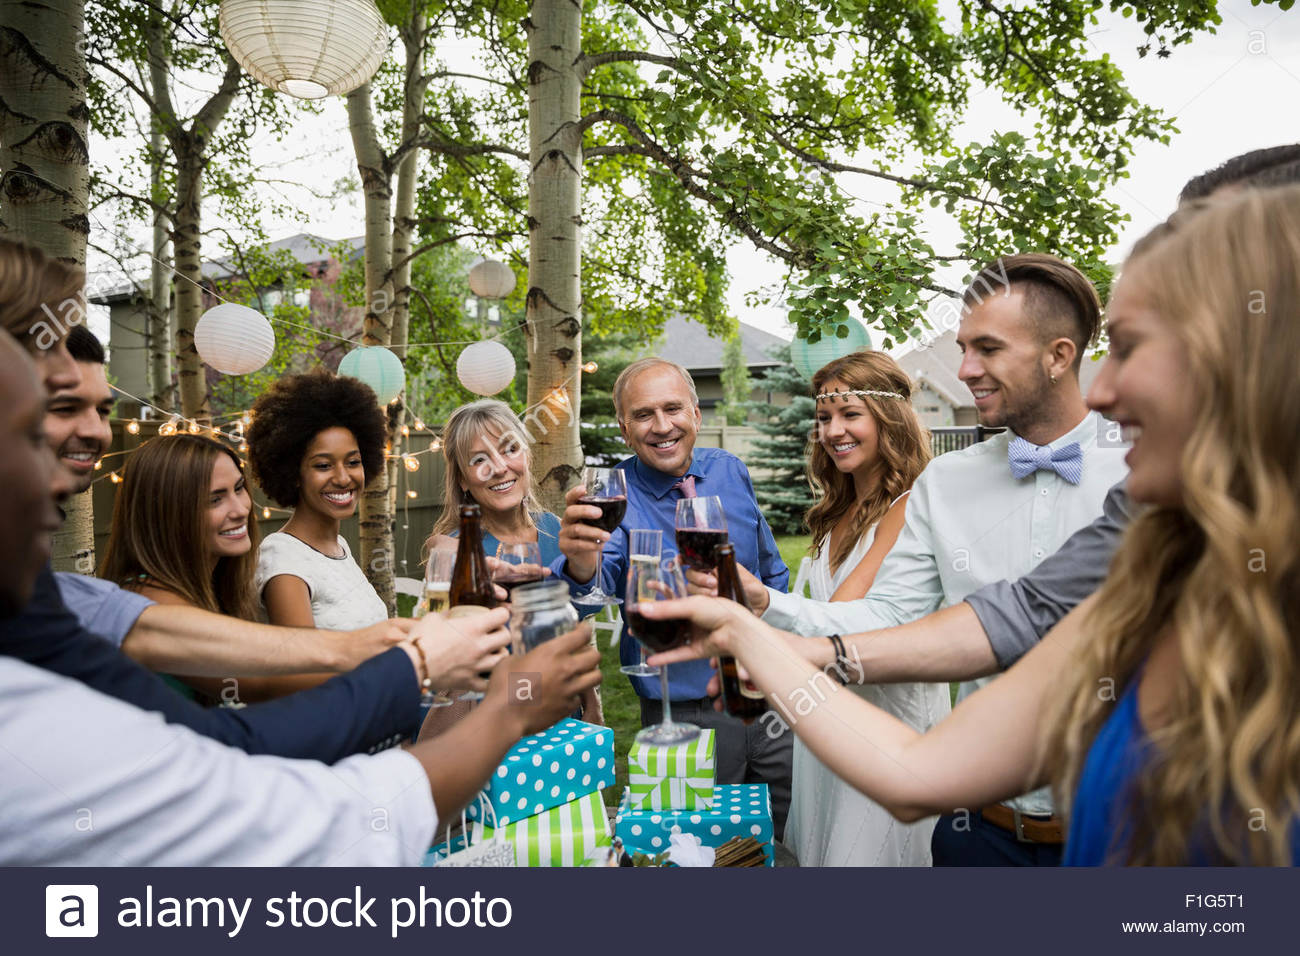 Bride, groom and wedding guests toasting drinks reception - Stock Image